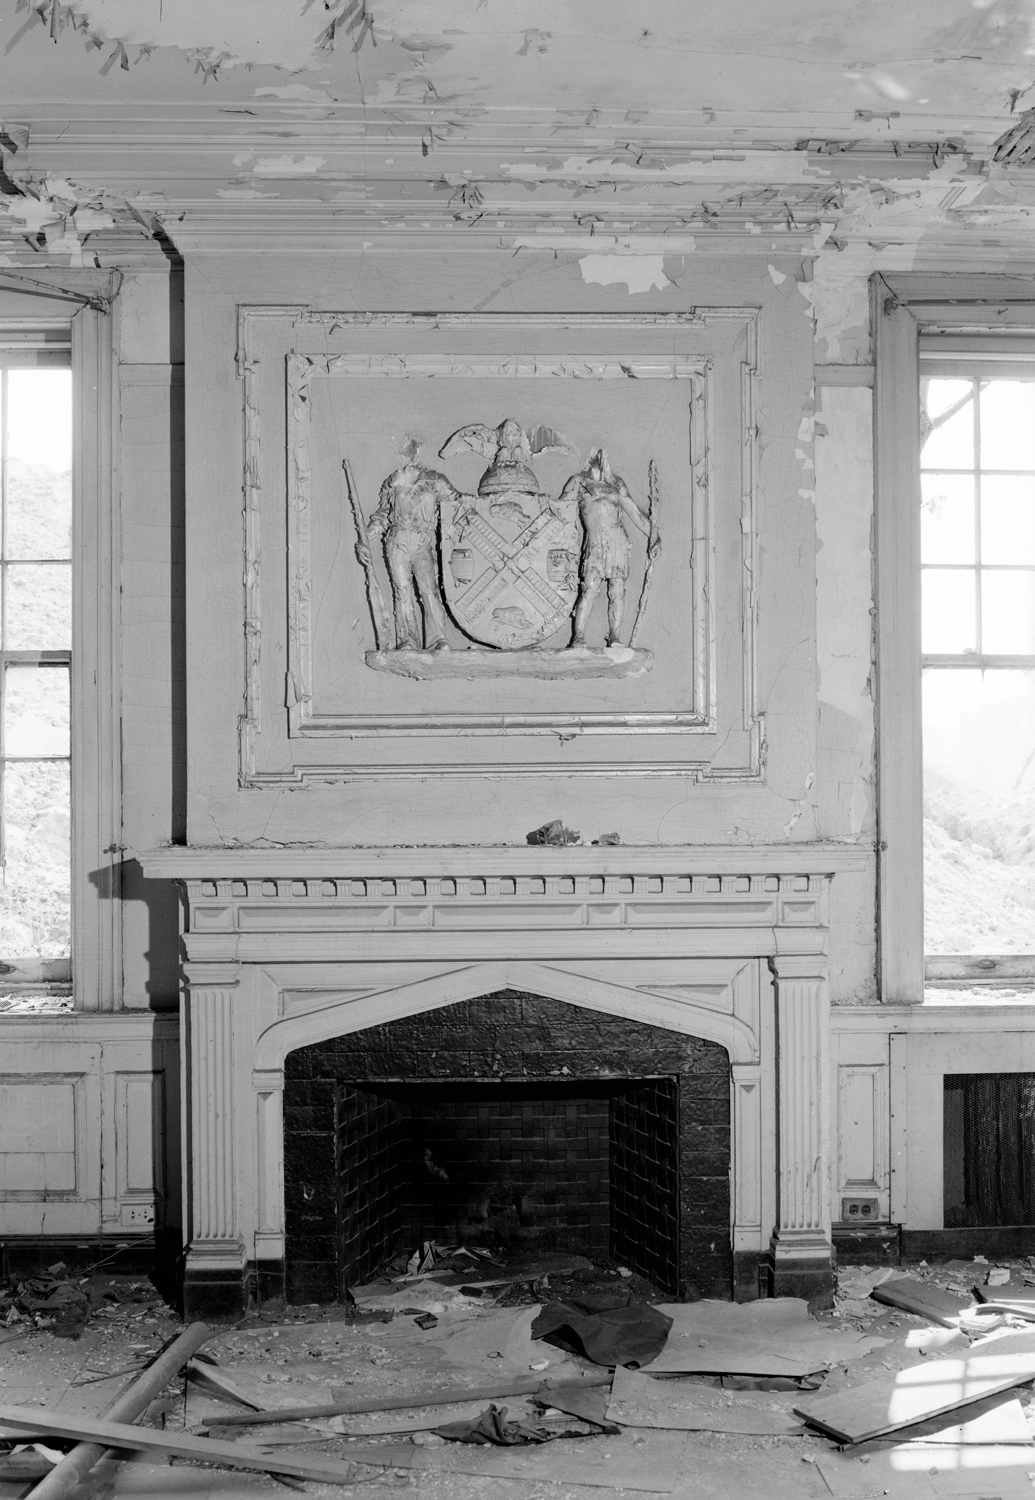 An original fireplace and mantle, the interiors of the building no longer exist, Library of Congress, 1983